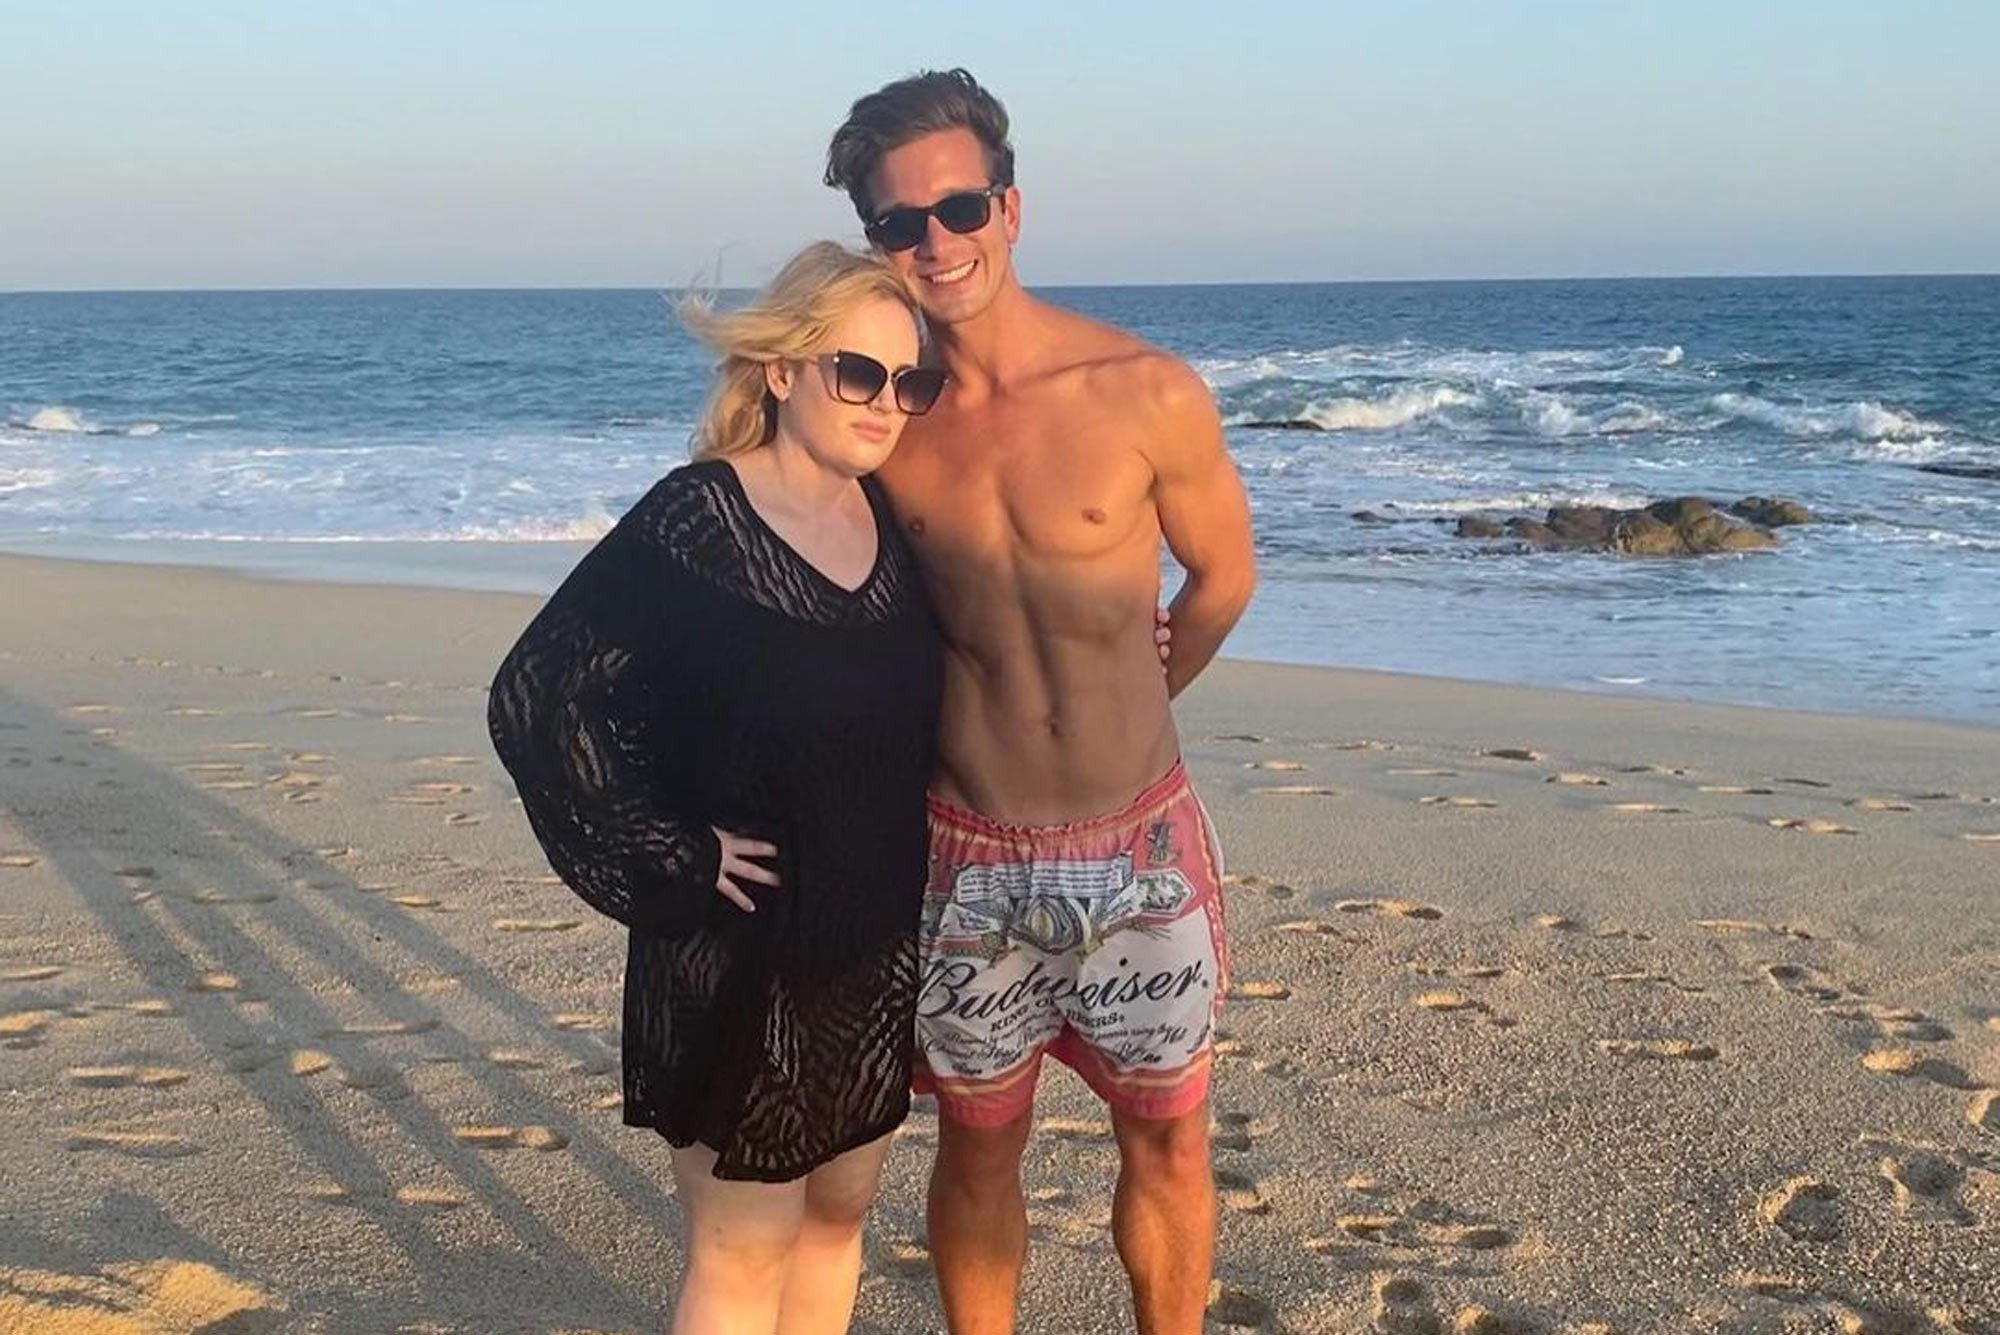 Rebel Wilson And Jacob Busch's Romance Is Over – Actress Declares Herself 'Single!'